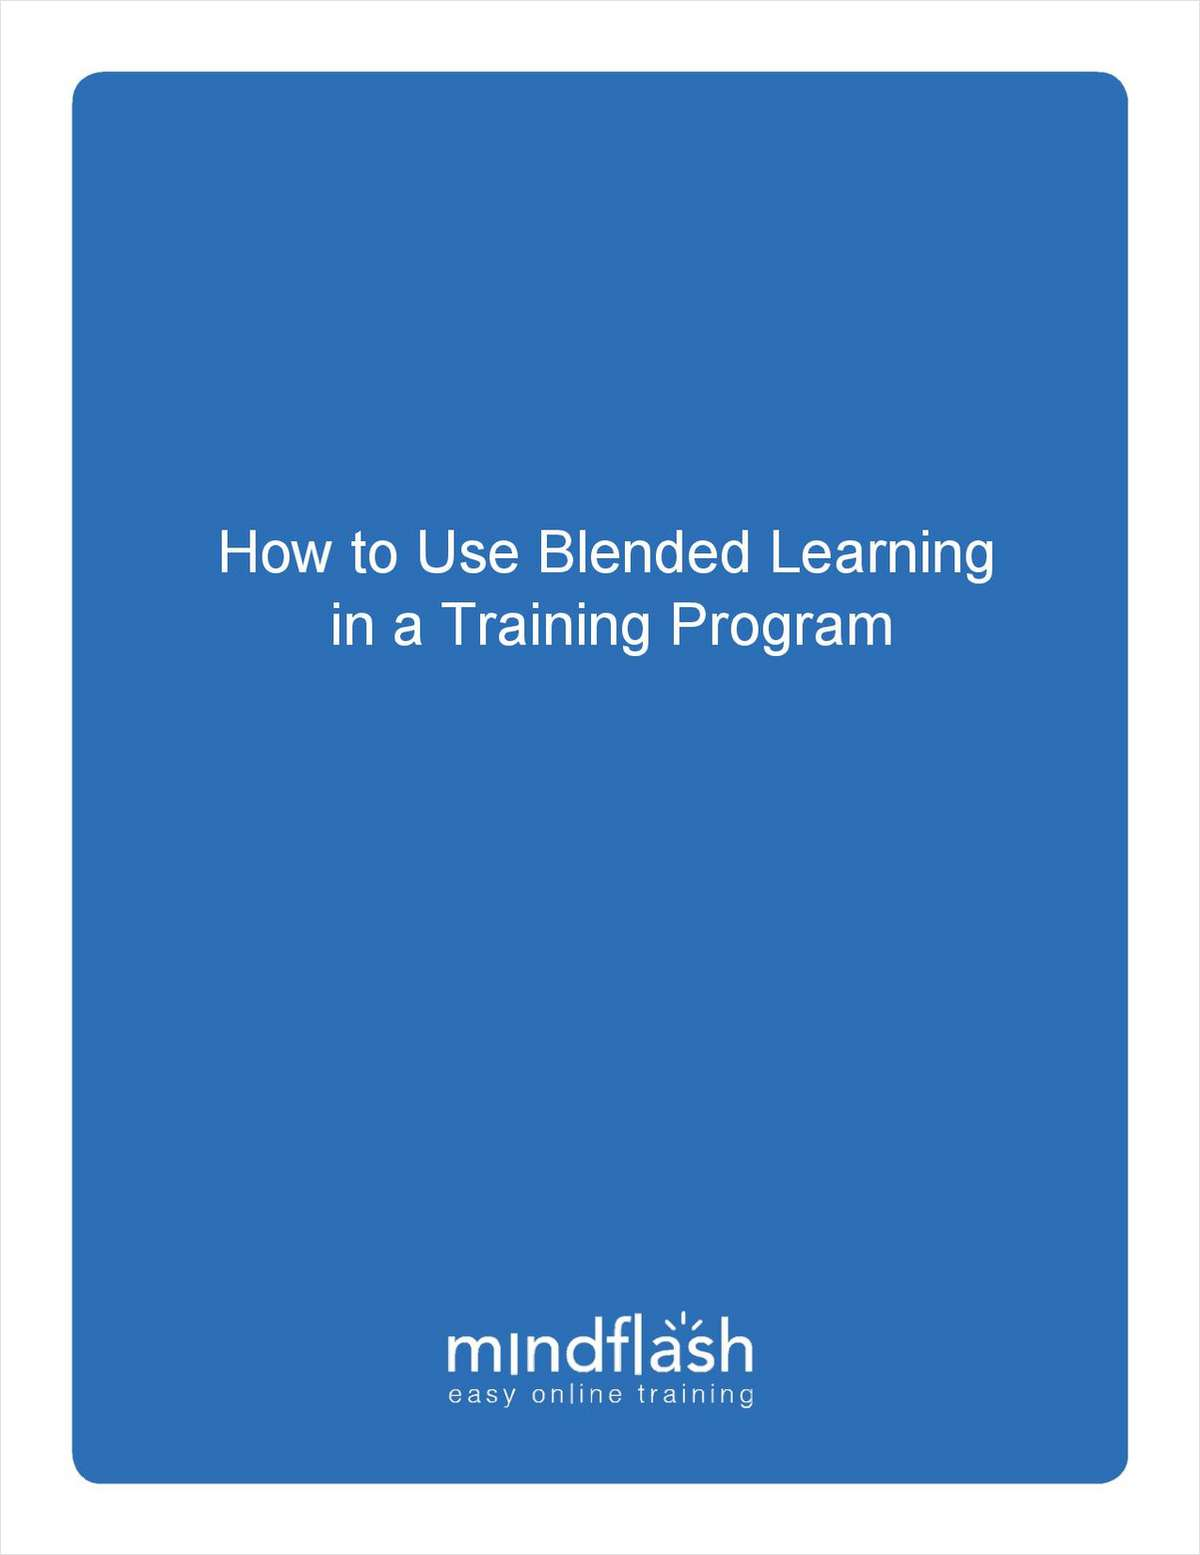 How to Use Blended Learning in a Training Program